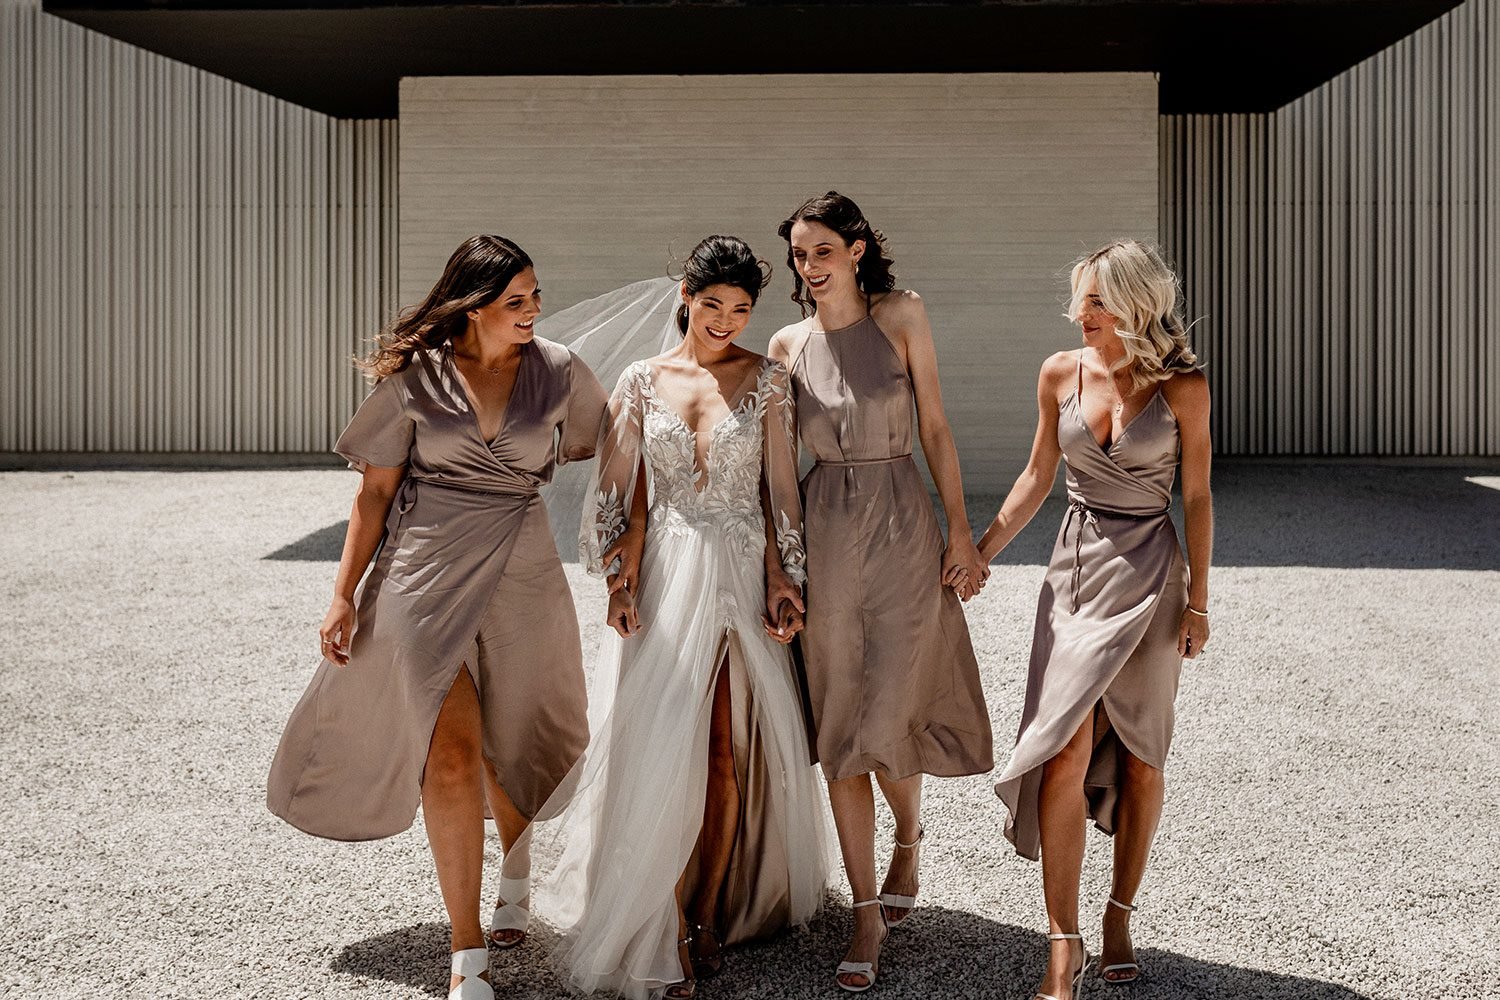 Bride wearing bespoke designer wedding dress by Vinka Bridal Boutique NZ, adorned with delicate applique lace and puffed sleeves - walking with bridesmaids